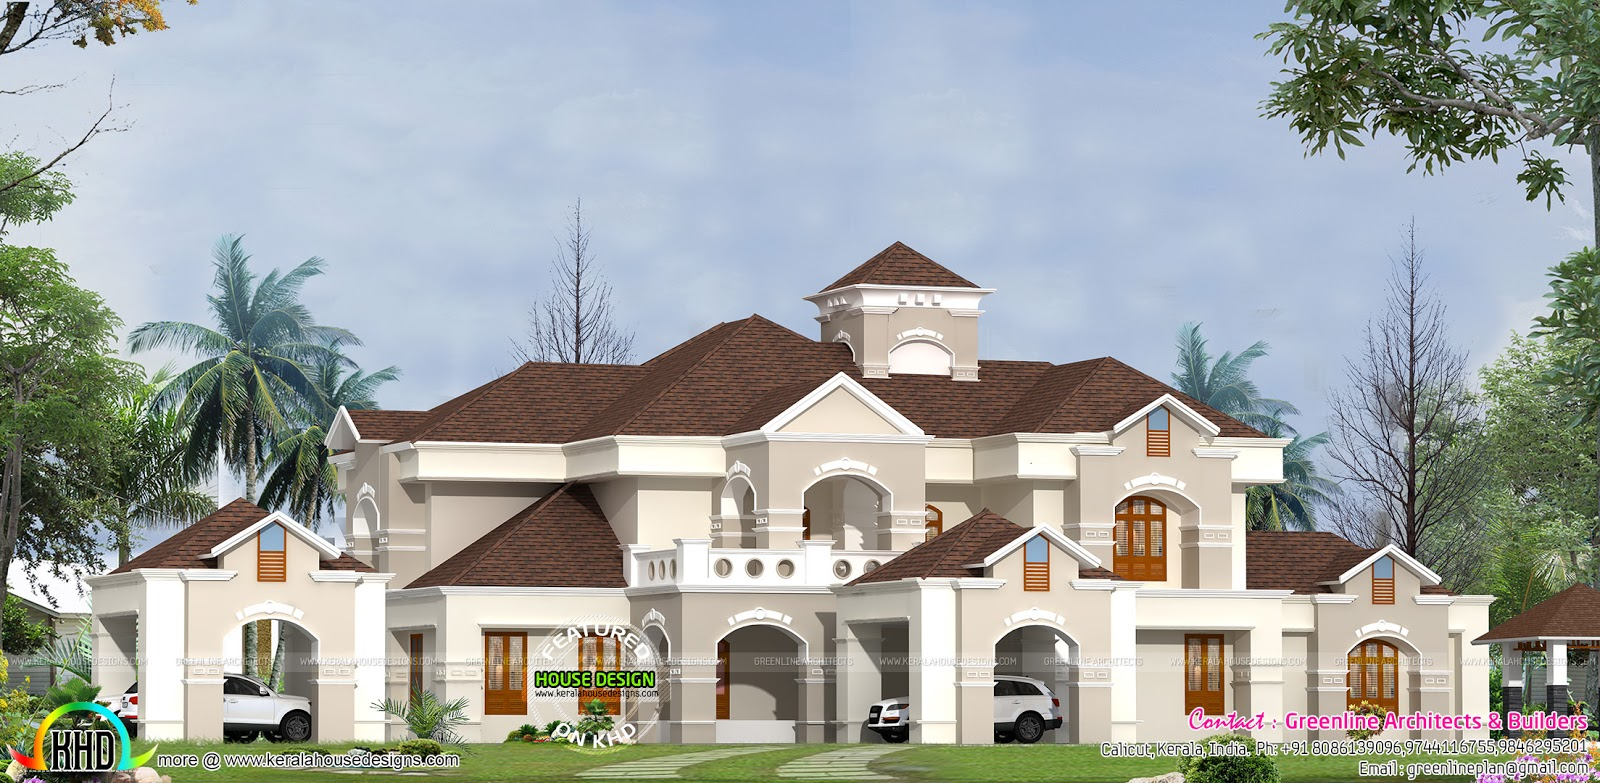 Super luxury villa design in kerala kerala home design and floor plans - Luxury home designs plans ...